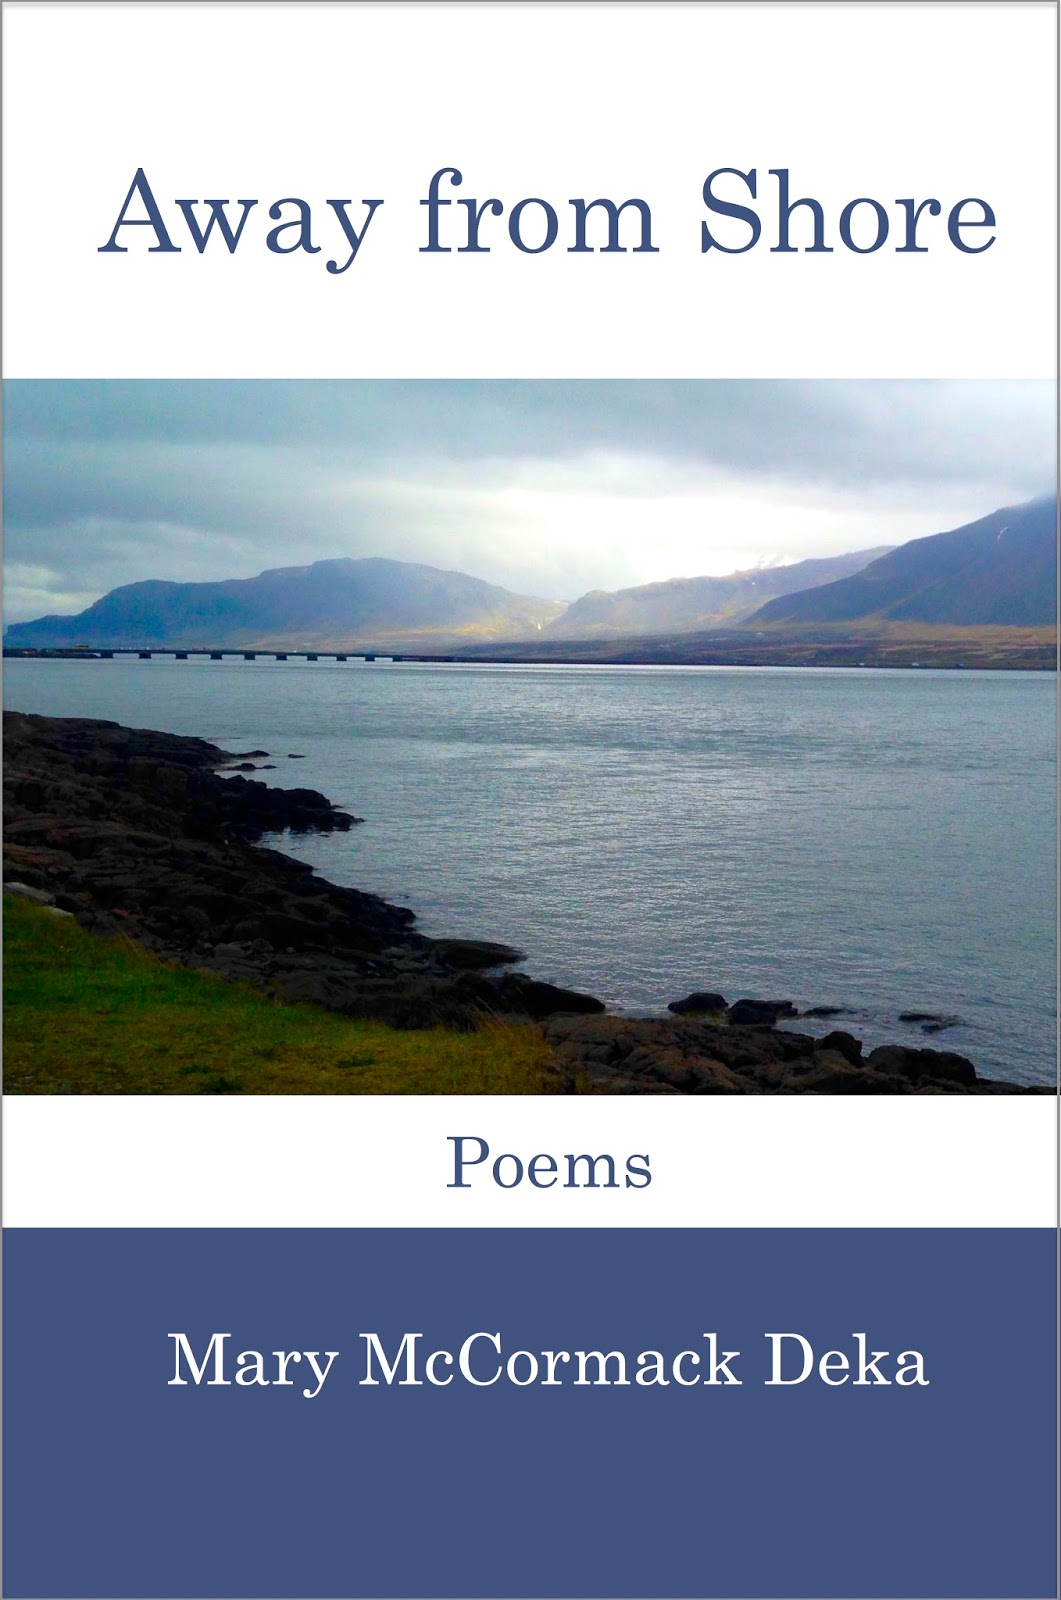 Interview with poet Mary McCormack Deka